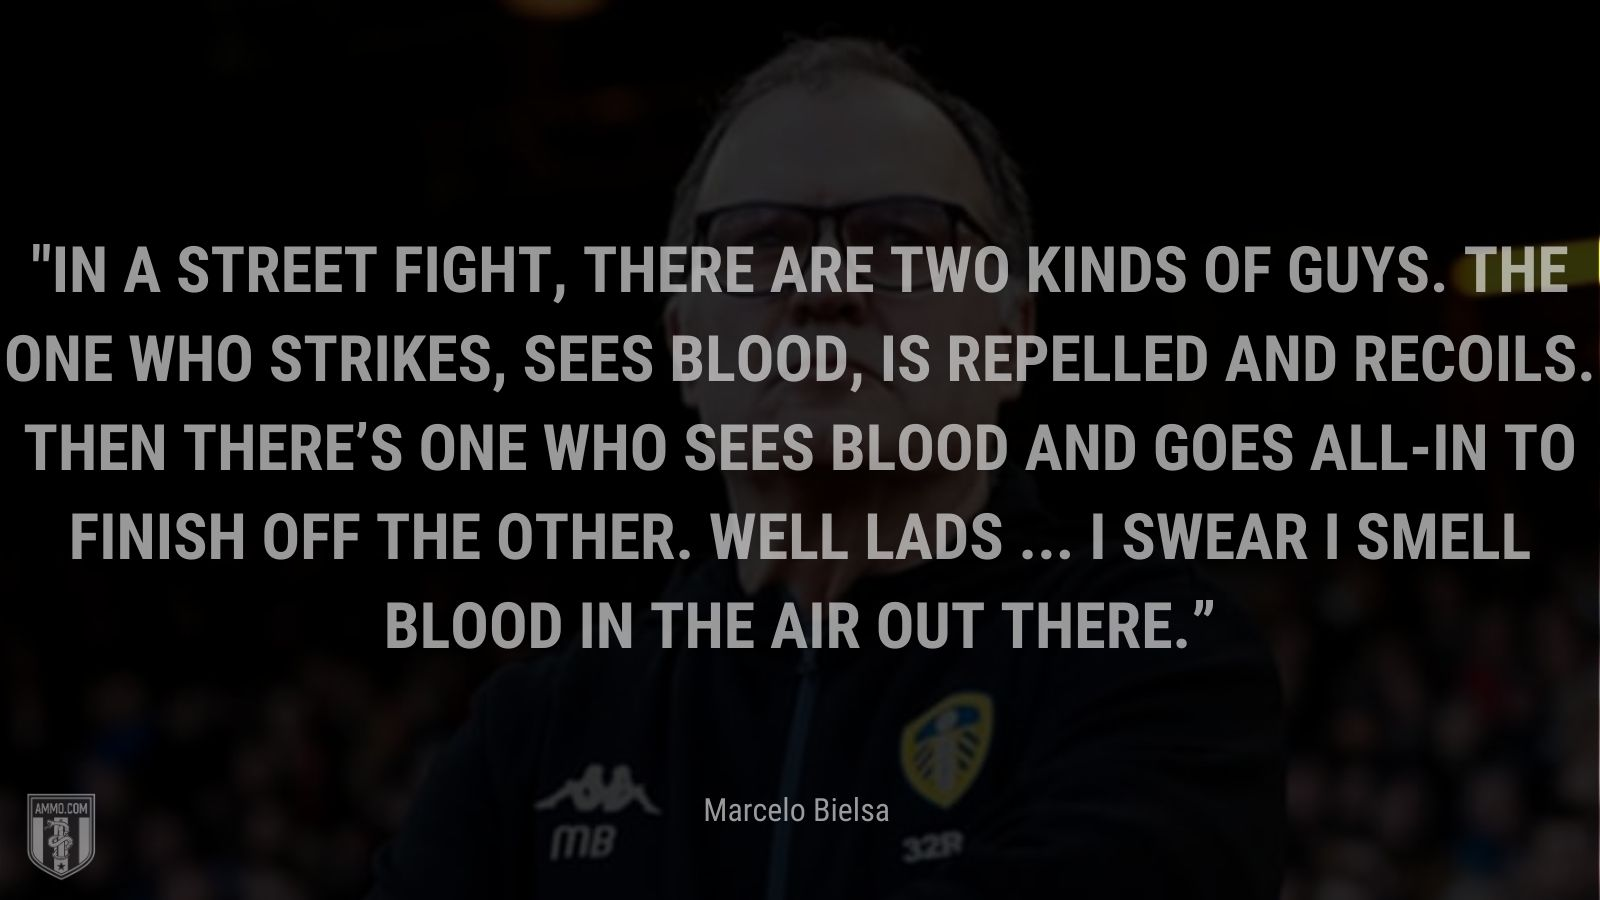 """""""In a street fight, there are two kinds of guys. The one who strikes, sees blood, is repelled and recoils. Then there's one who sees blood and goes all-in to finish off the other. Well lads ... I swear I smell blood in the air out there.v"""" - Marcelo Bielsa"""